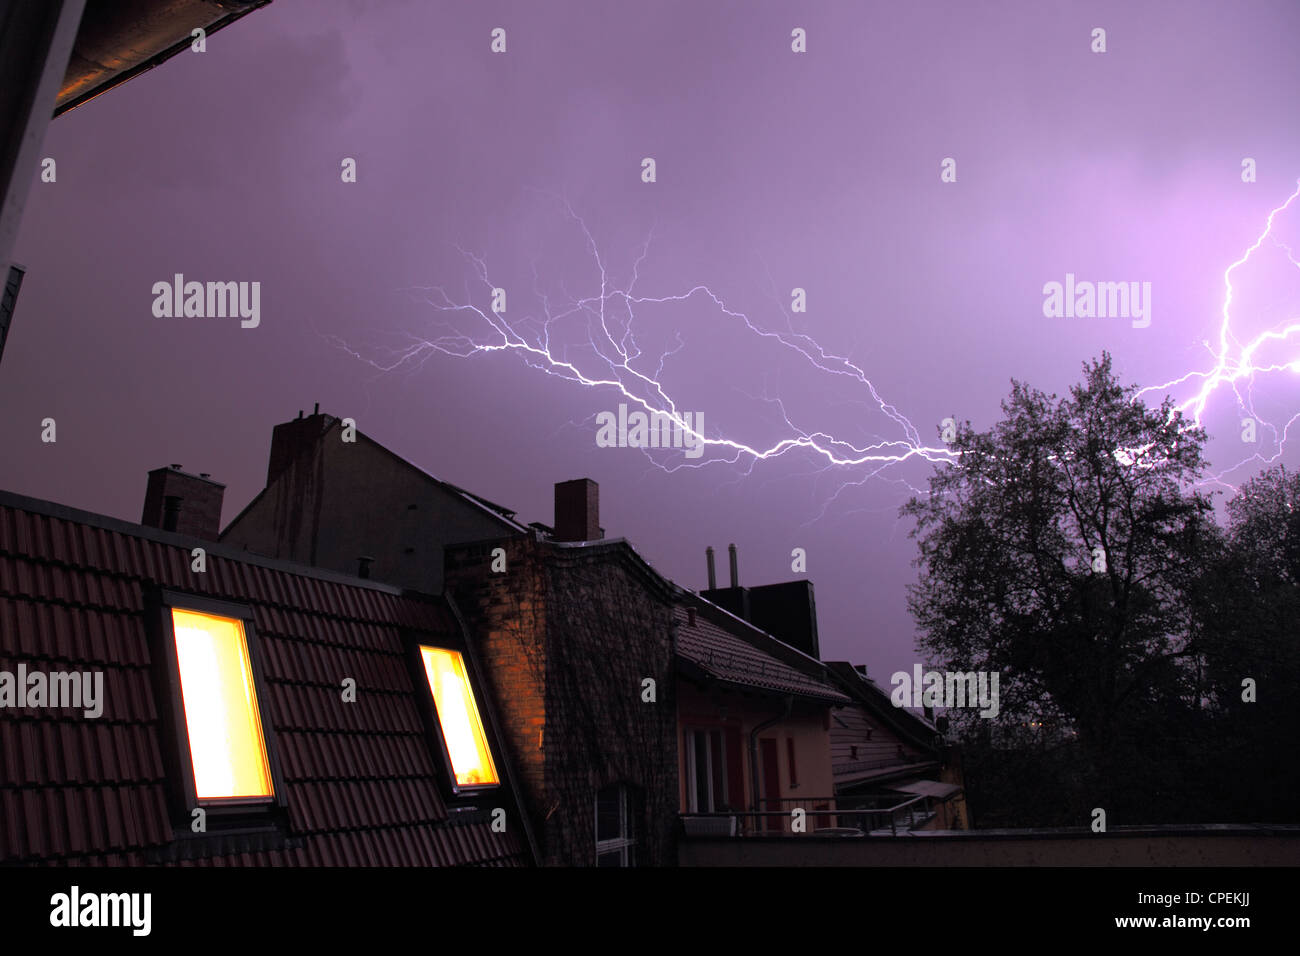 lightning storm with bolts above the rooftops of row houses - Stock Image